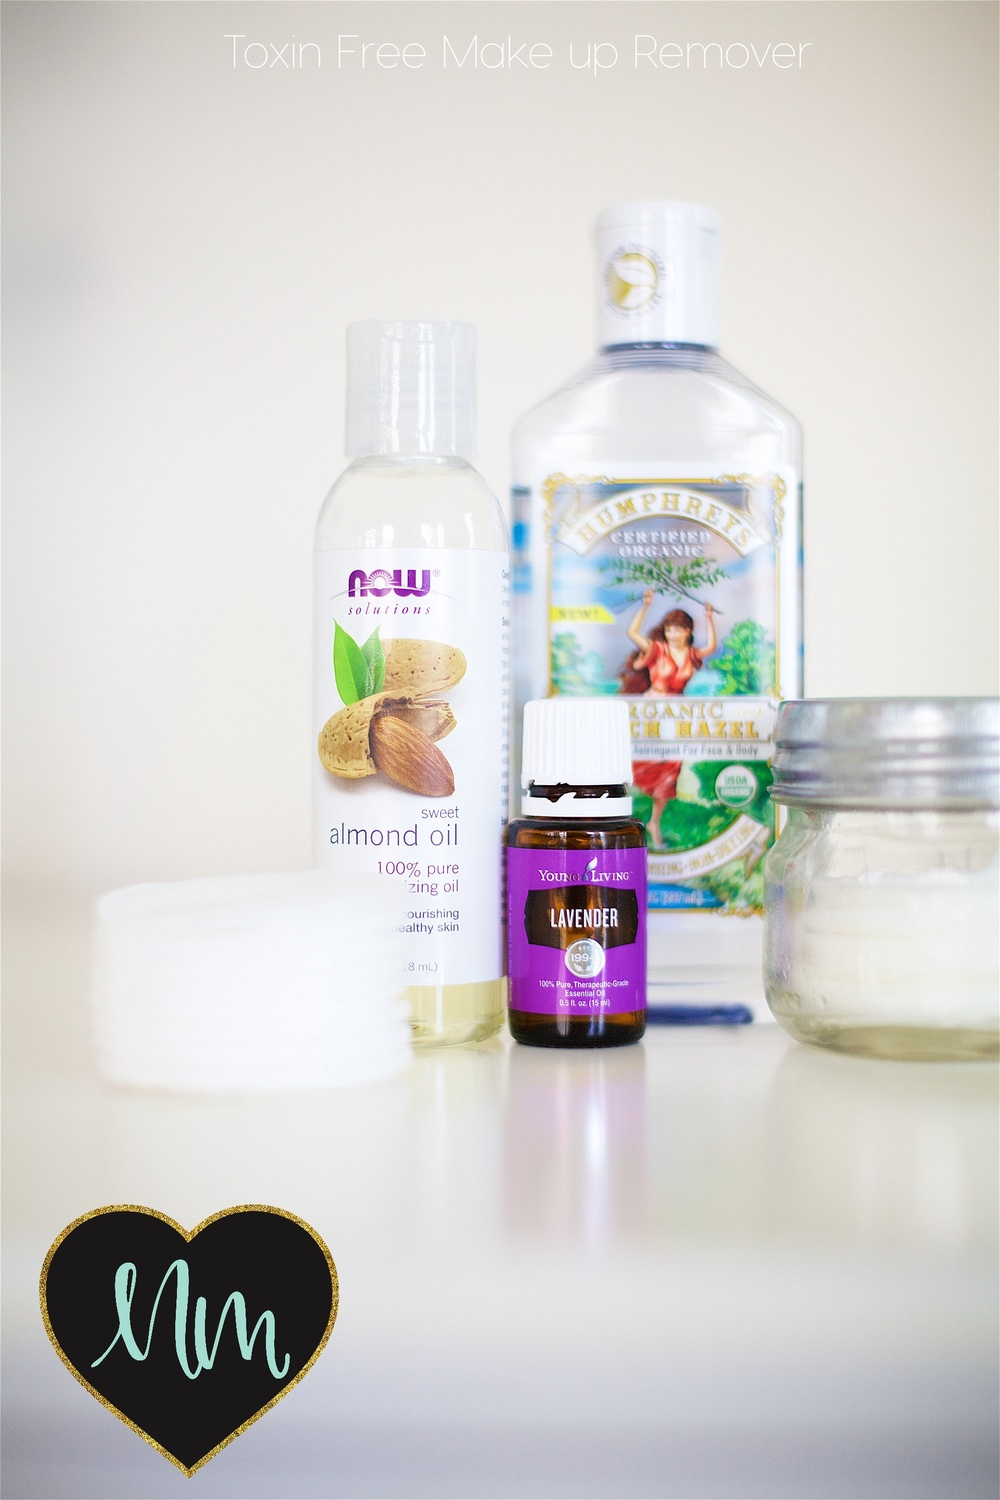 toxin free make up remover with young living oils